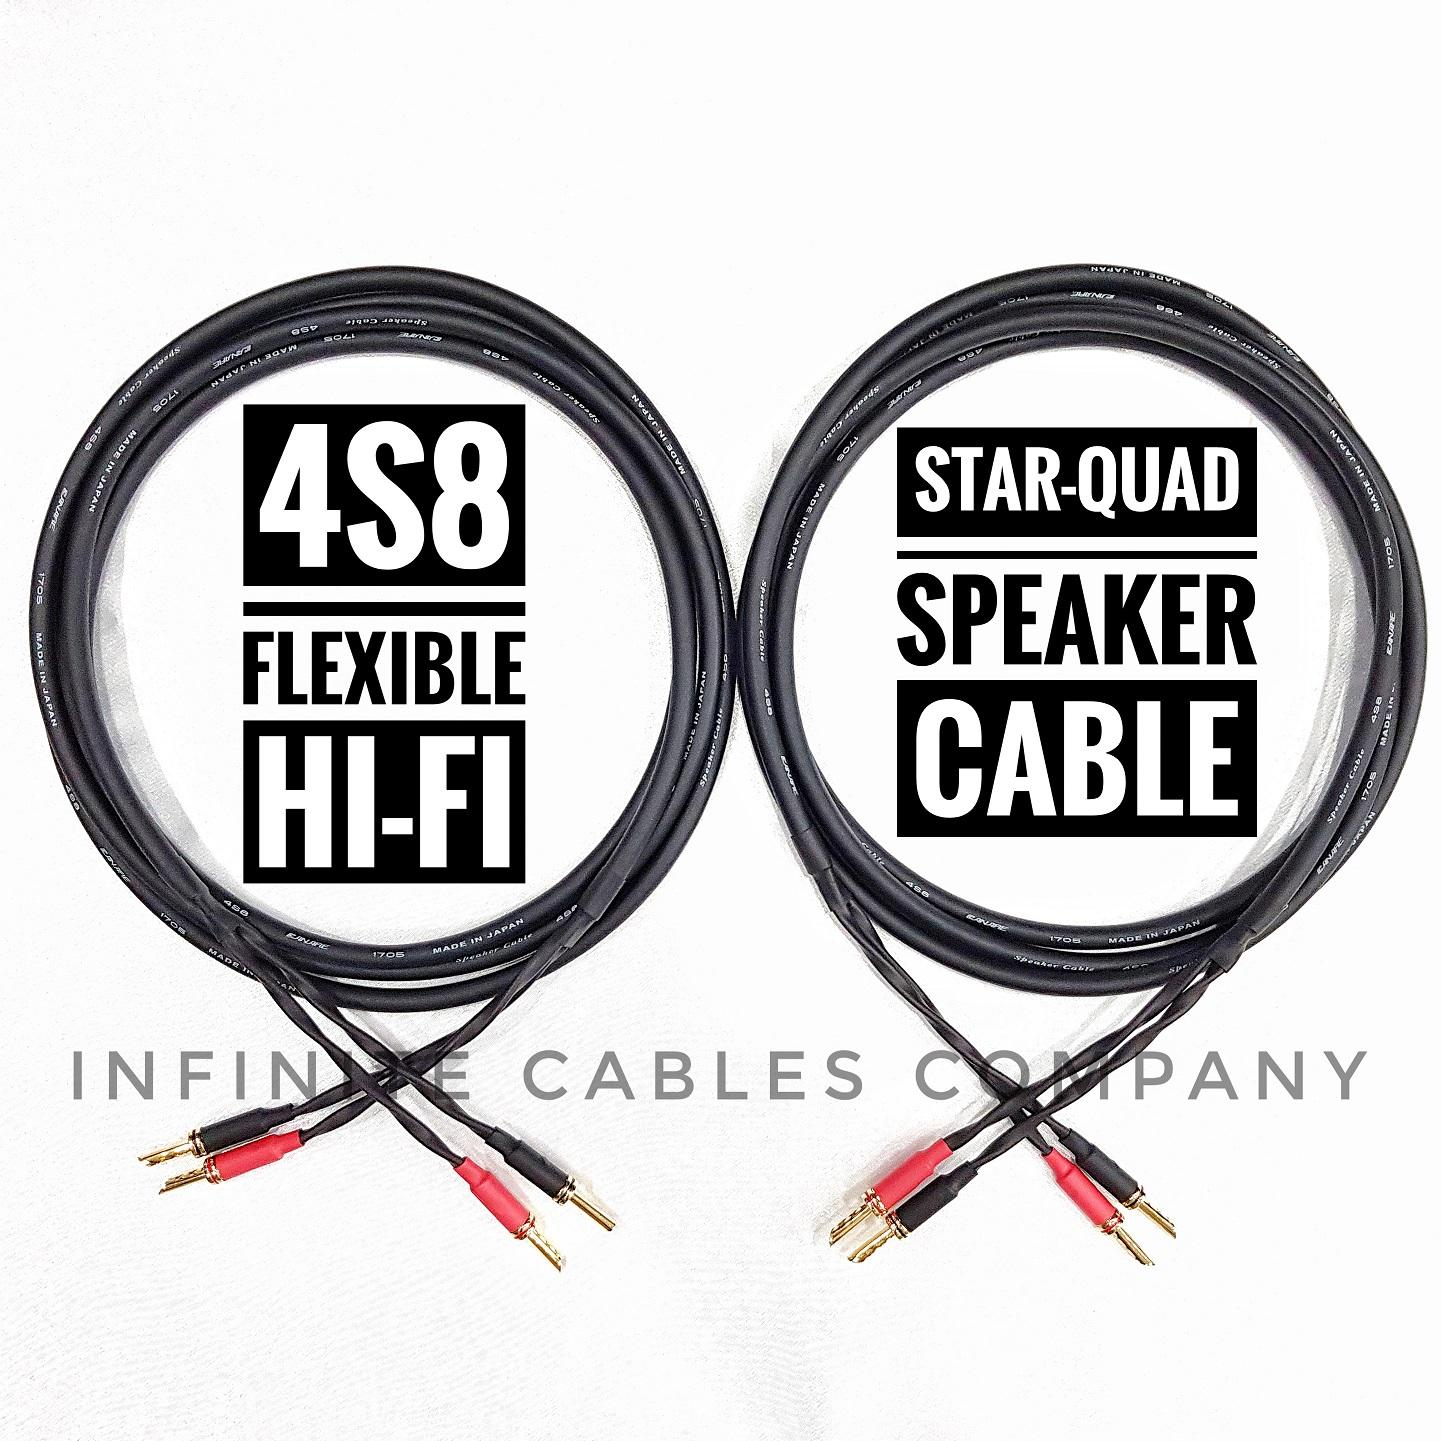 Quality Speaker Cable Canare 4S8 3 Meter Pair Price